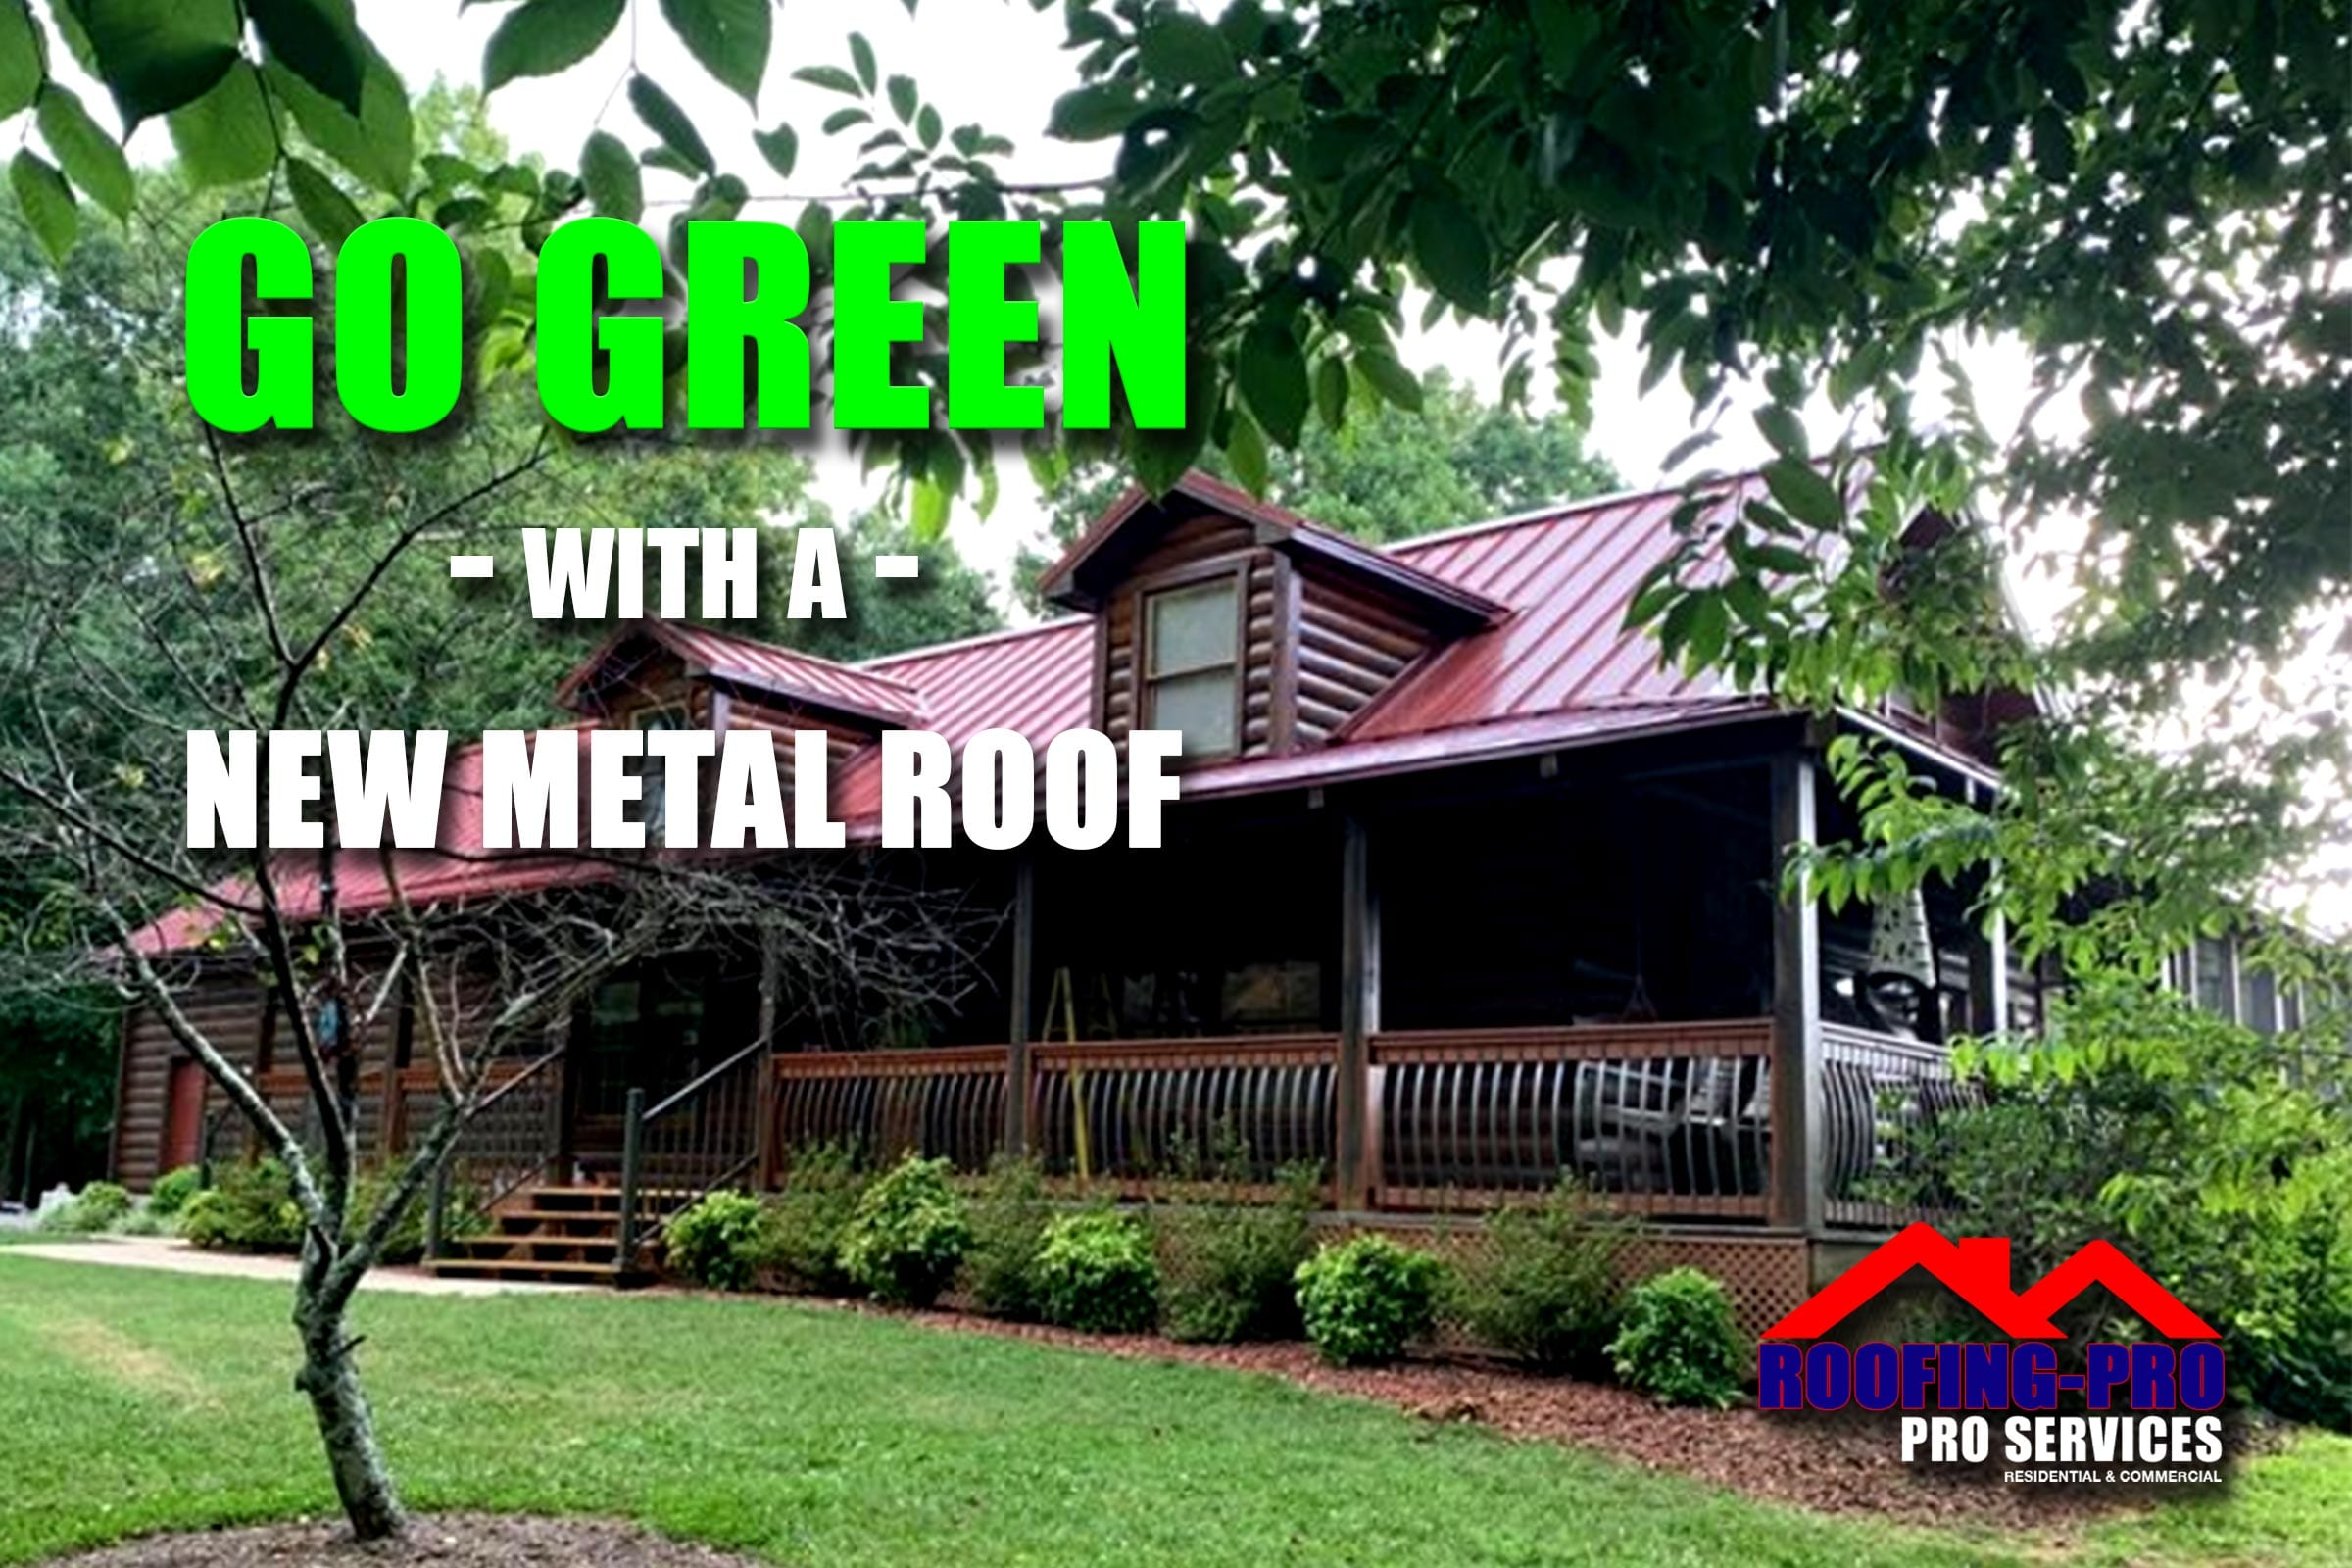 Go-Green-With-A-New-Metal-Roof-Installation-Roofing-Pro